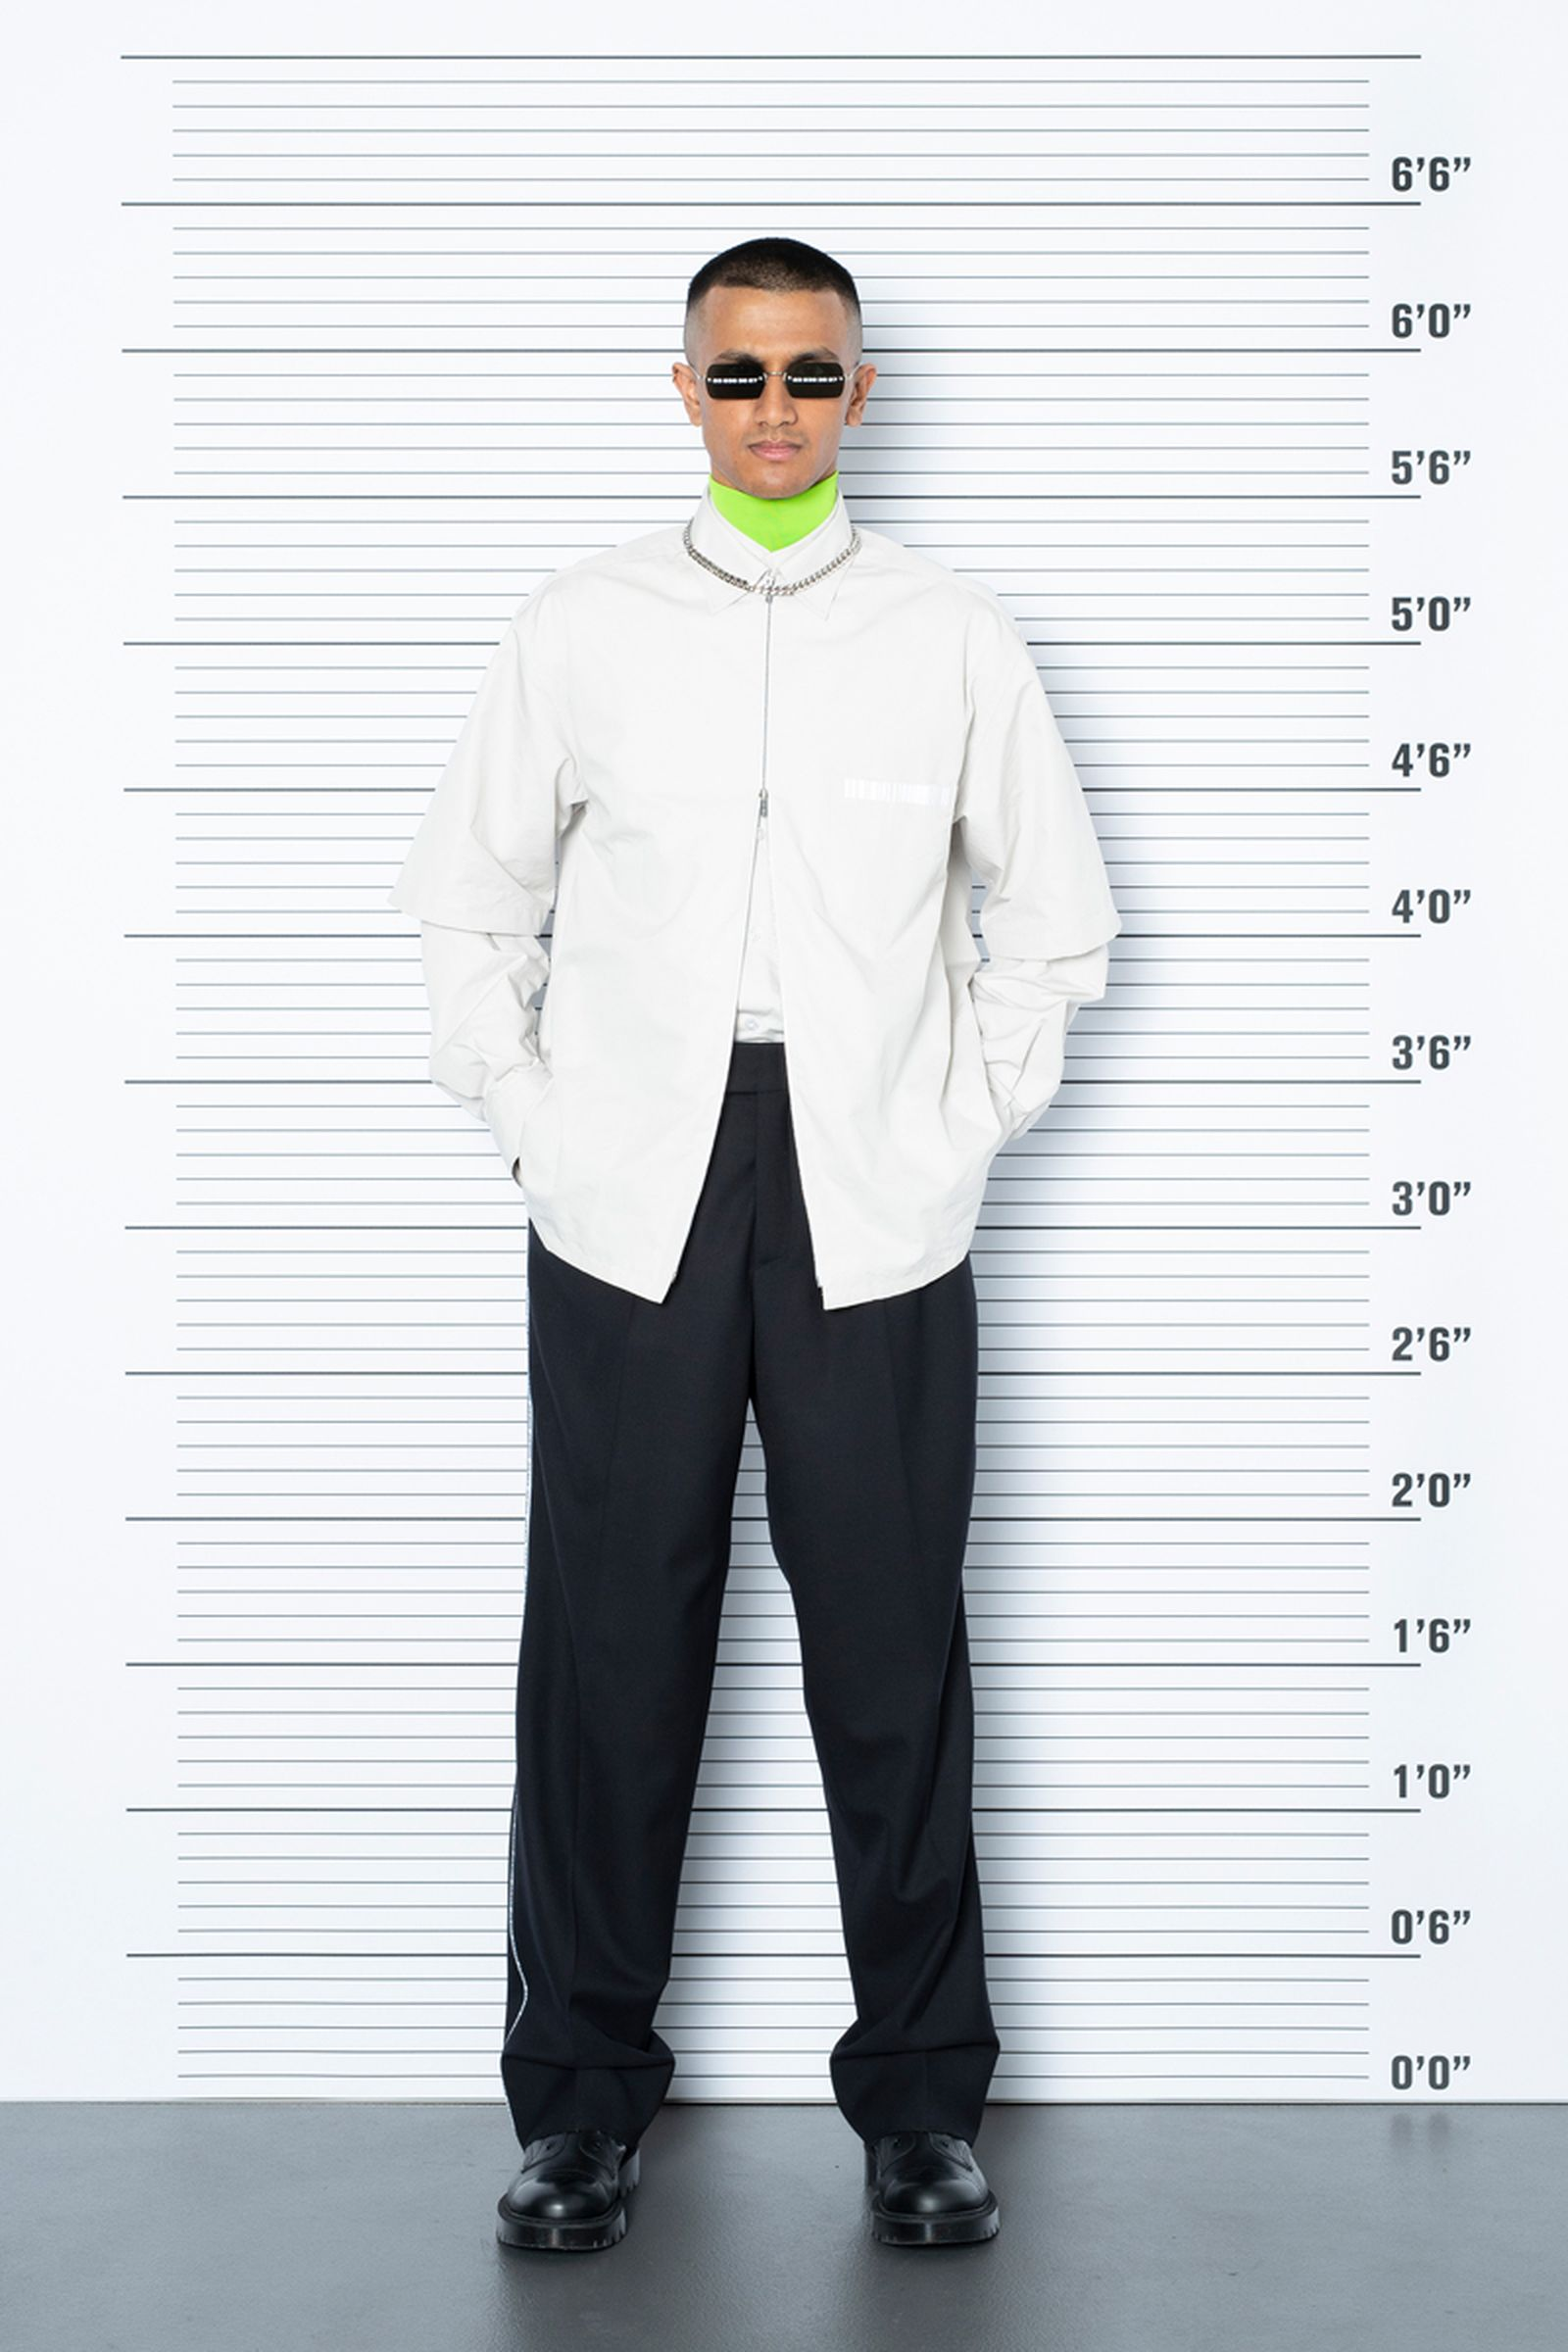 vetements-vtmnts-ss22-collection-lookbook- (14)